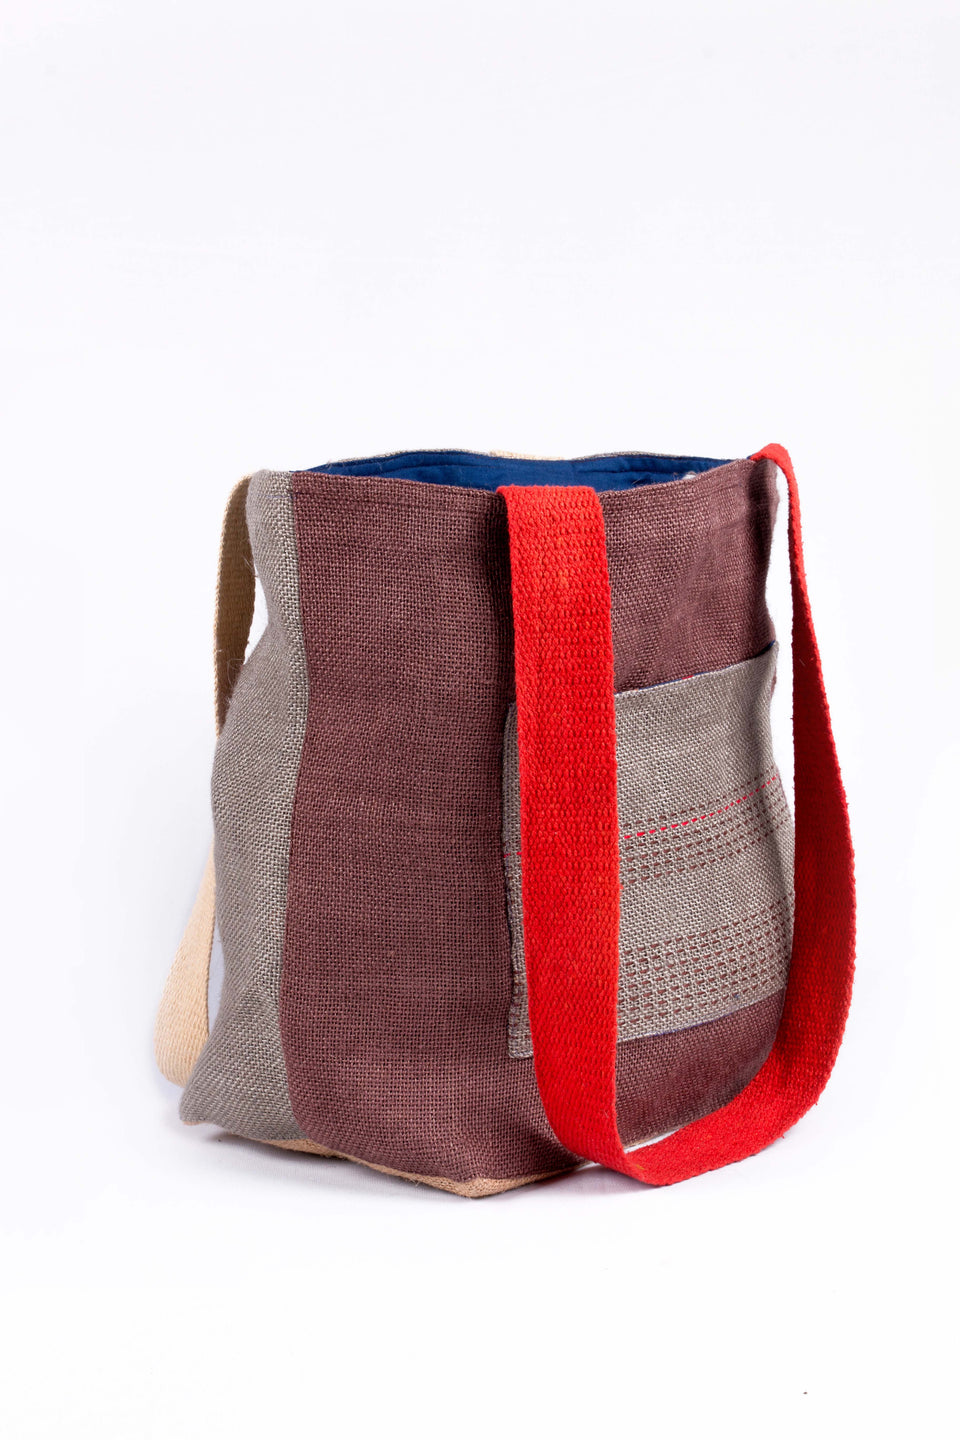 Bishesh Tote in Grey, Brown and White